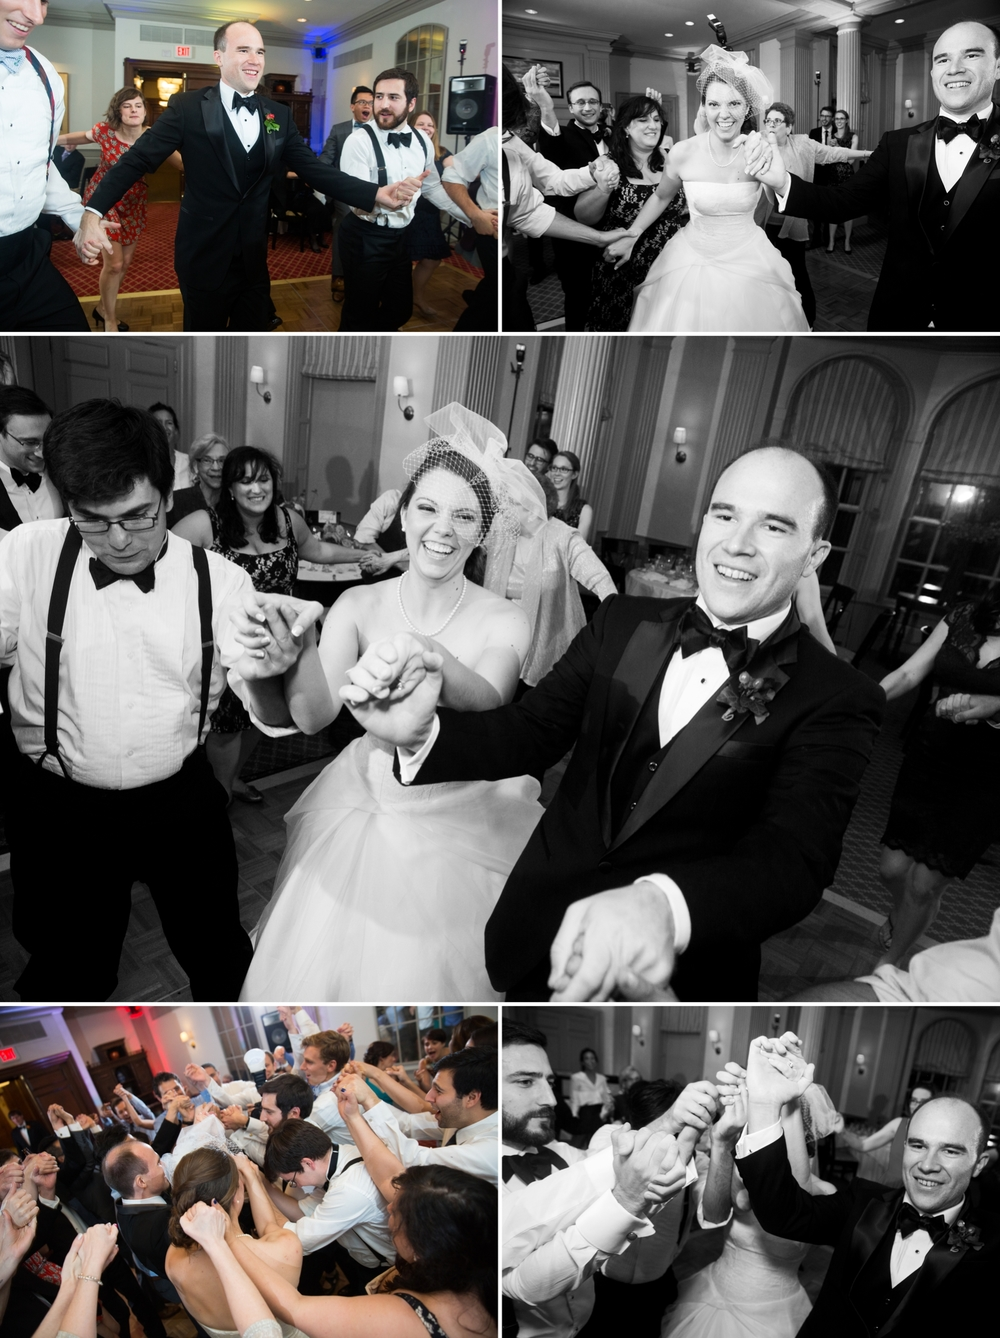 HarvardFacultyClubWedding_BostonMAFallWedding_MichelleGirardPhotography57.jpg